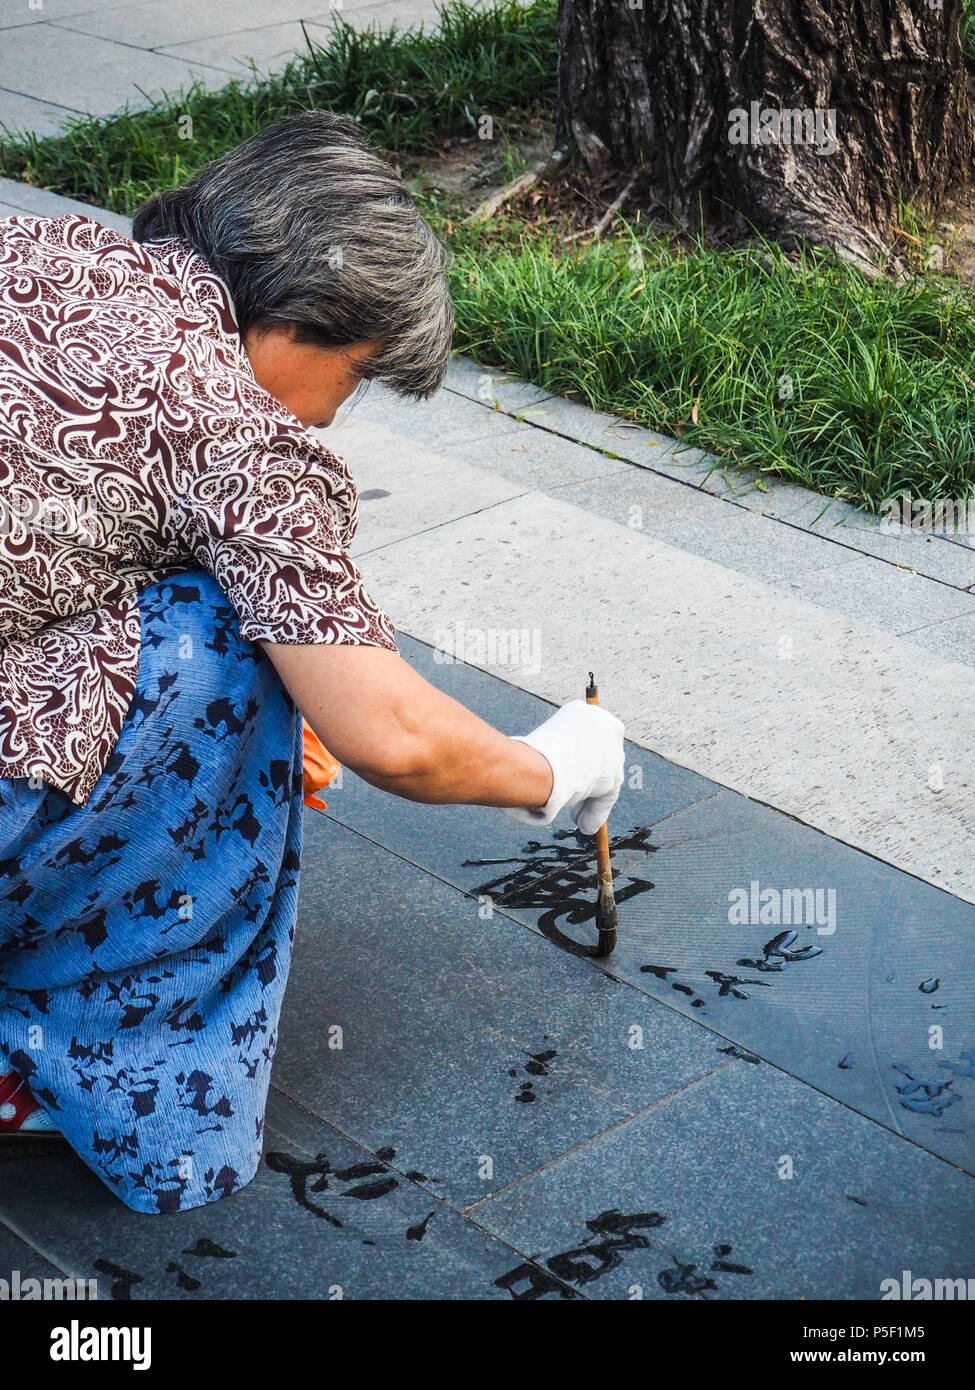 Beijing, China - September 2017: Older woman practicing water calligraphy but due to the heat the Chinese characters vanish instantly and are not read - Stock Image